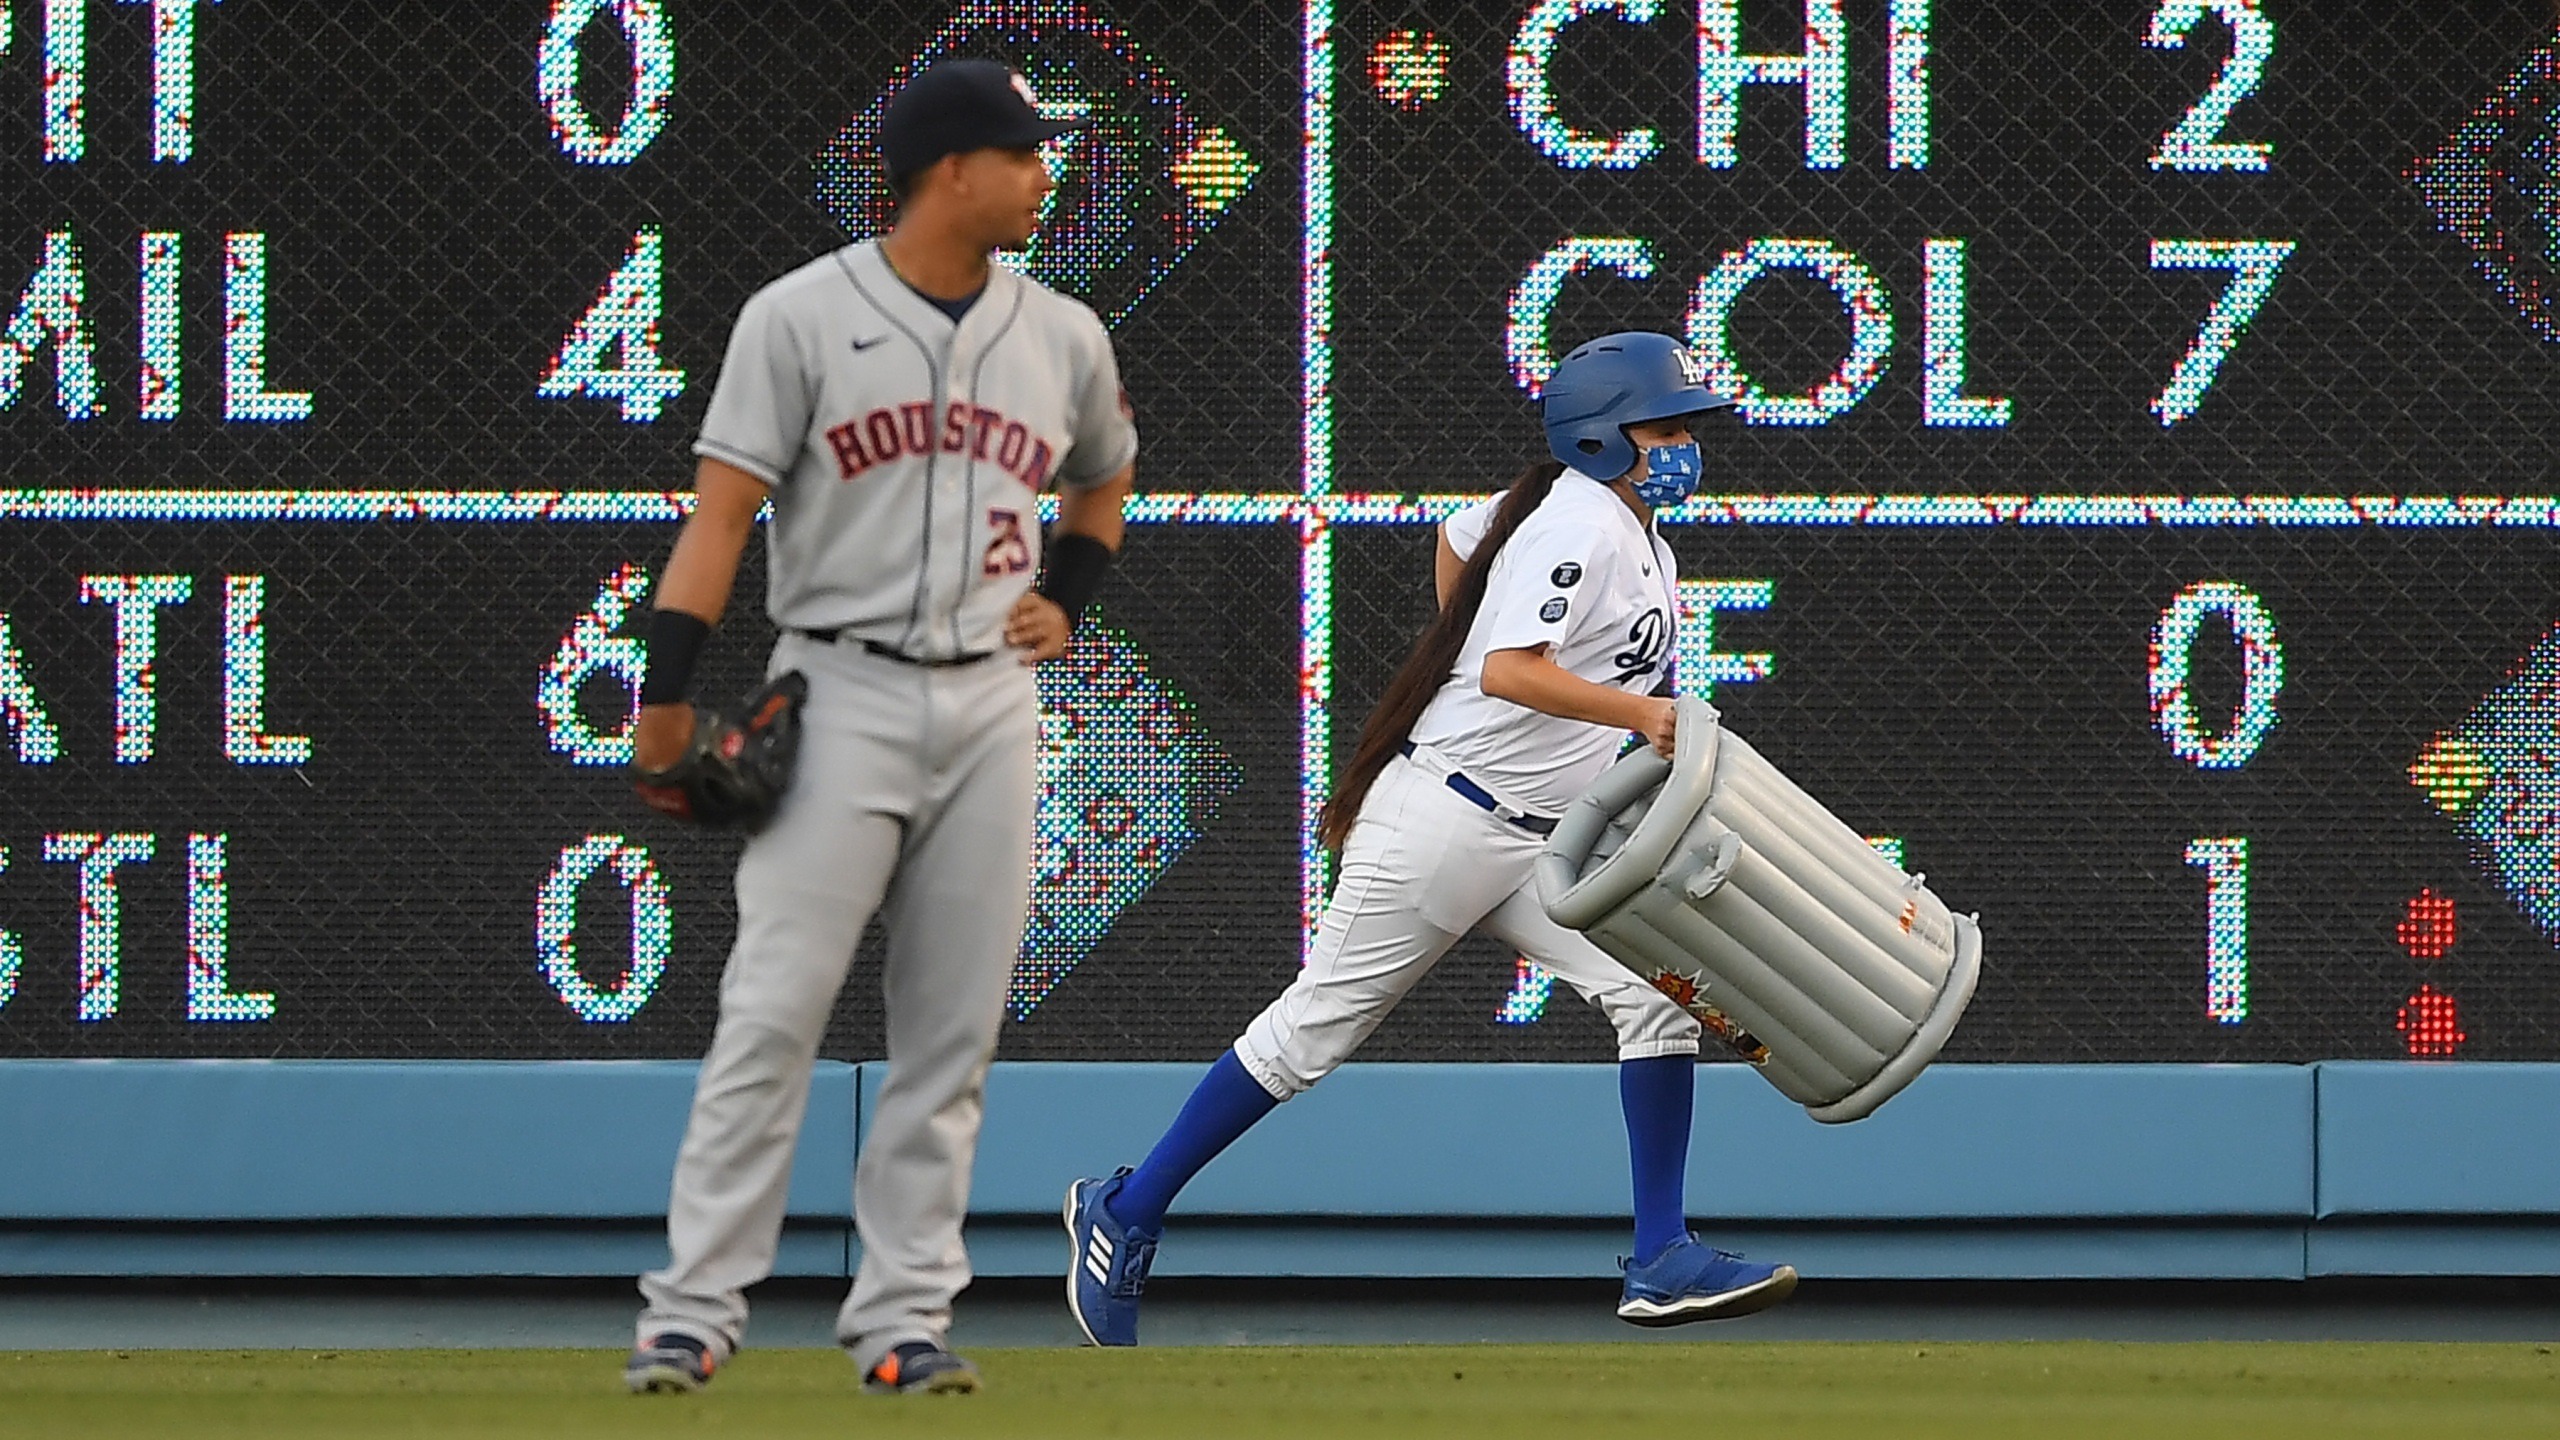 Michael Brantley #23 of the Houston Astros watches as a bat girl removes an inflatable trash can that was thrown onto the field in the first inning against the Los Angeles Dodgers at Dodger Stadium on Aug. 3, 2021, in Los Angeles, California. (Jayne Kamin-Oncea/Getty Images)